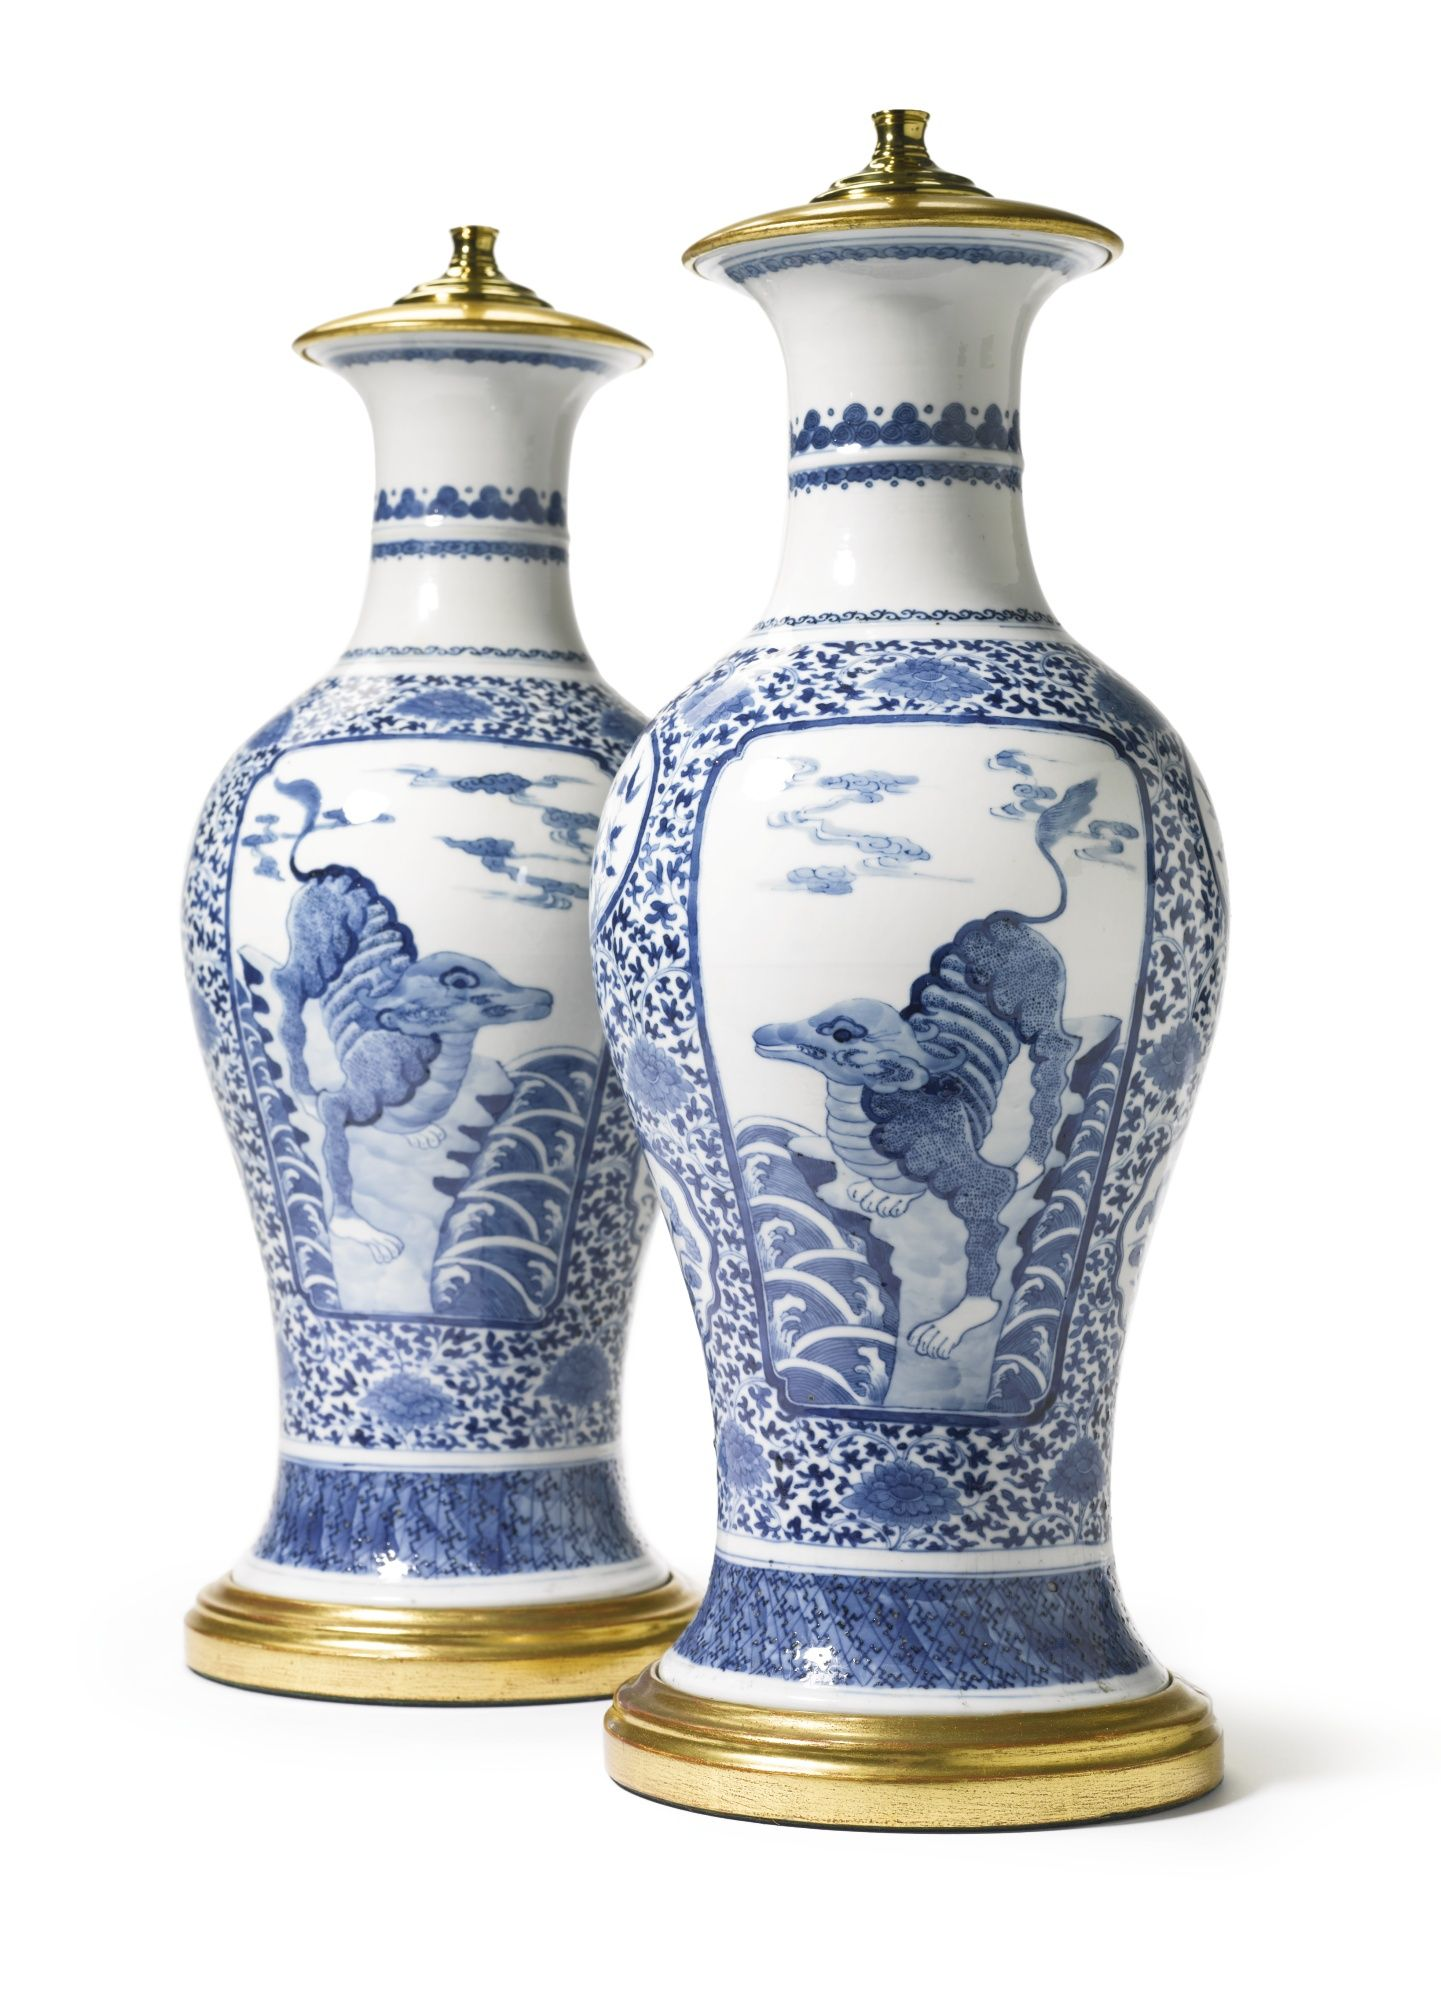 A pair of chinese porcelain blue and white vases mounted as lamps a pair of chinese porcelain blue and white vases mounted as lamps 19th century reviewsmspy